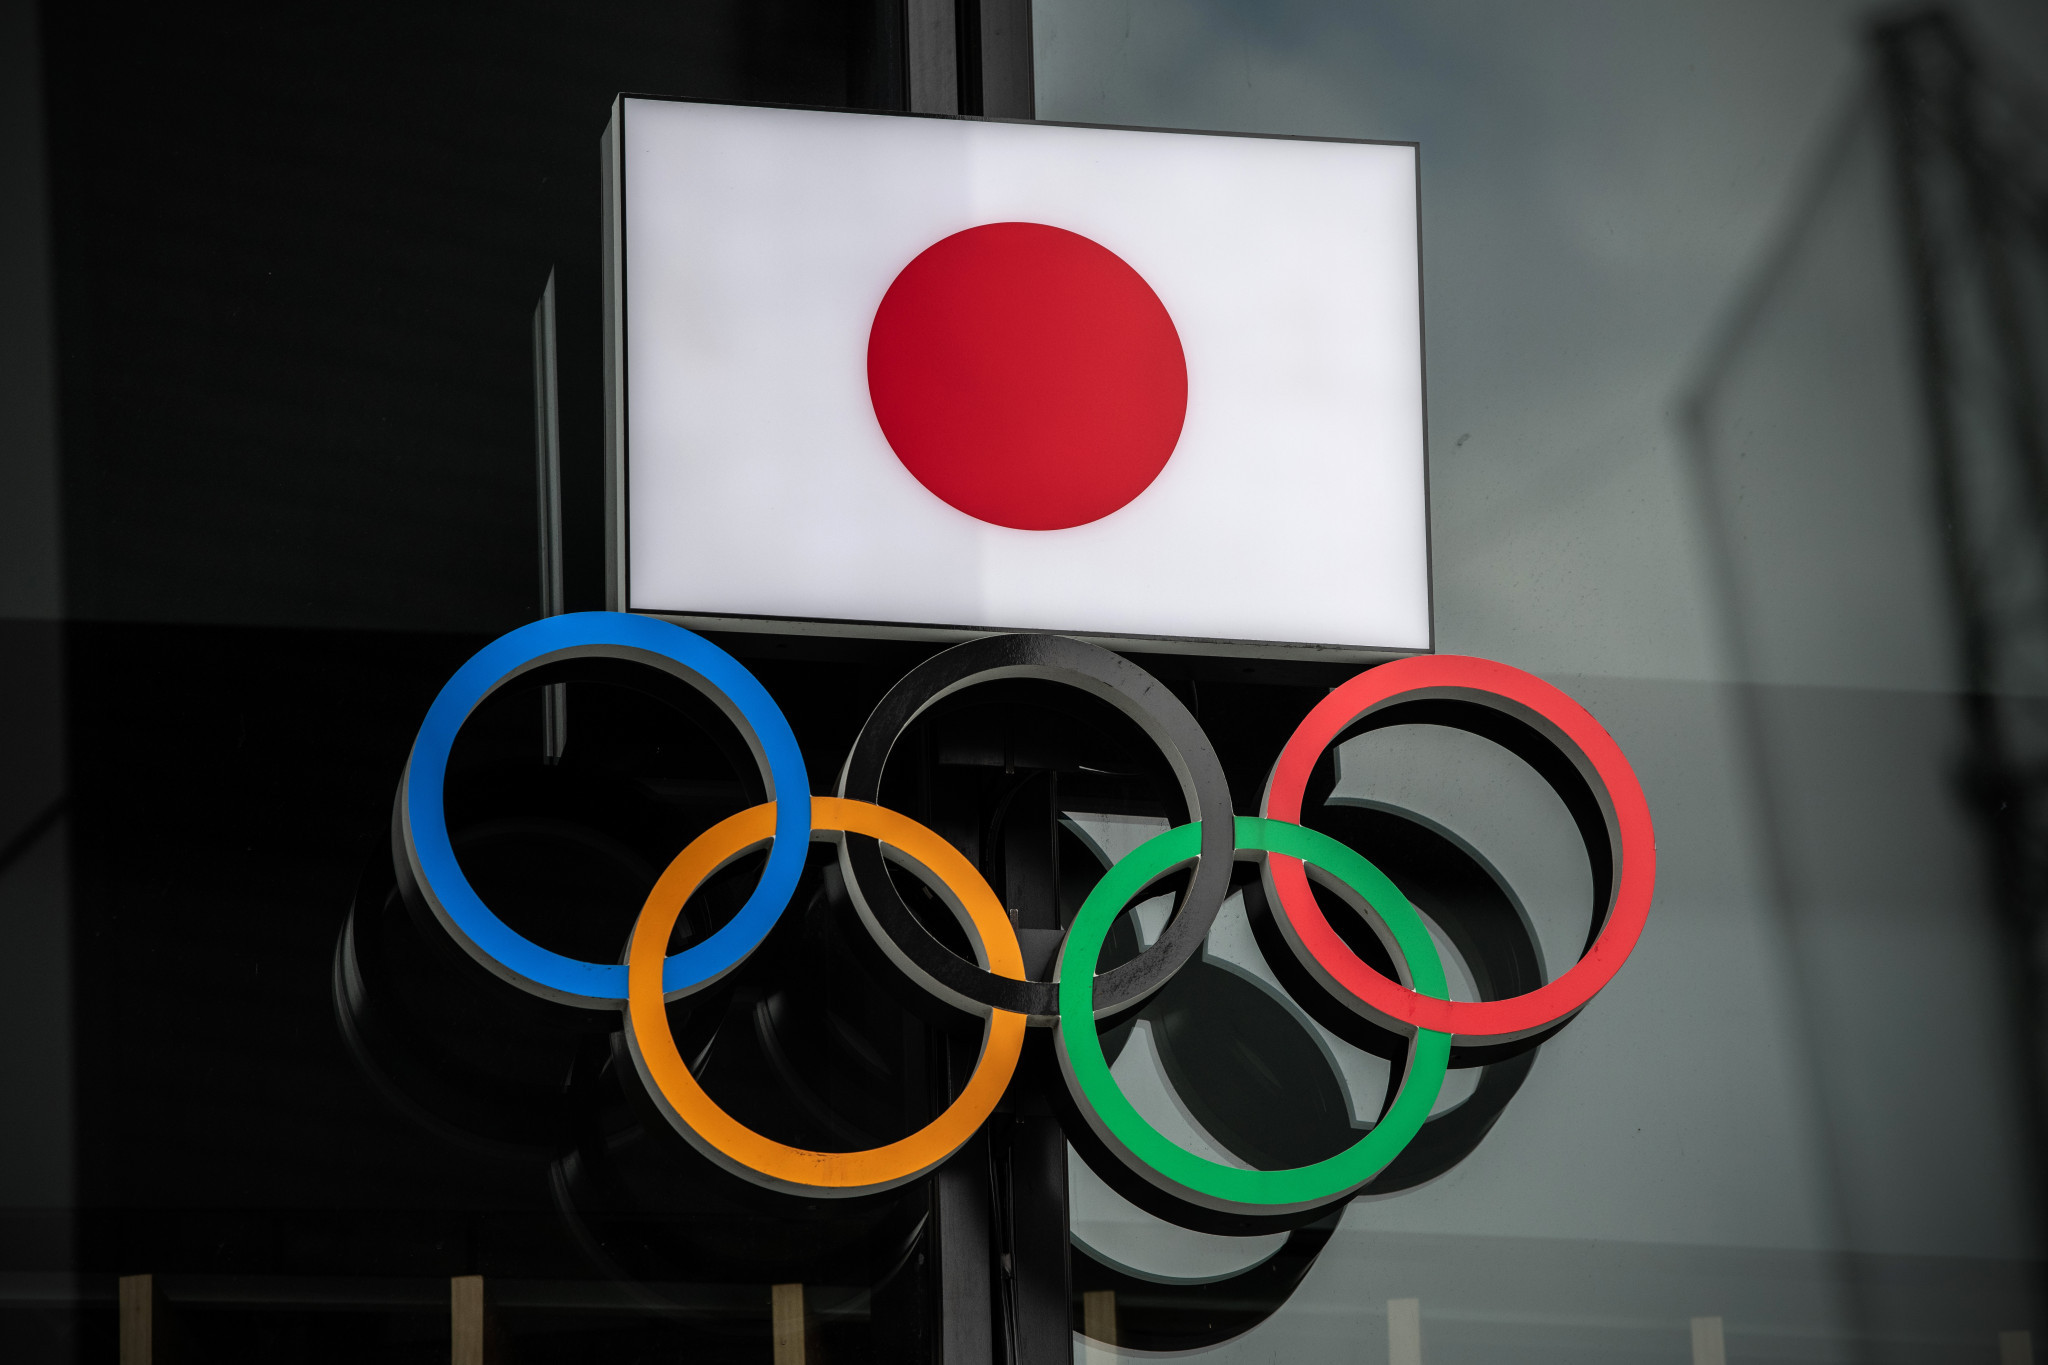 """Tokyo 2020 organisers claimed alleged Russian cyber-attacks have had no """"significant impact"""" on preparations for the Games ©Getty Images"""